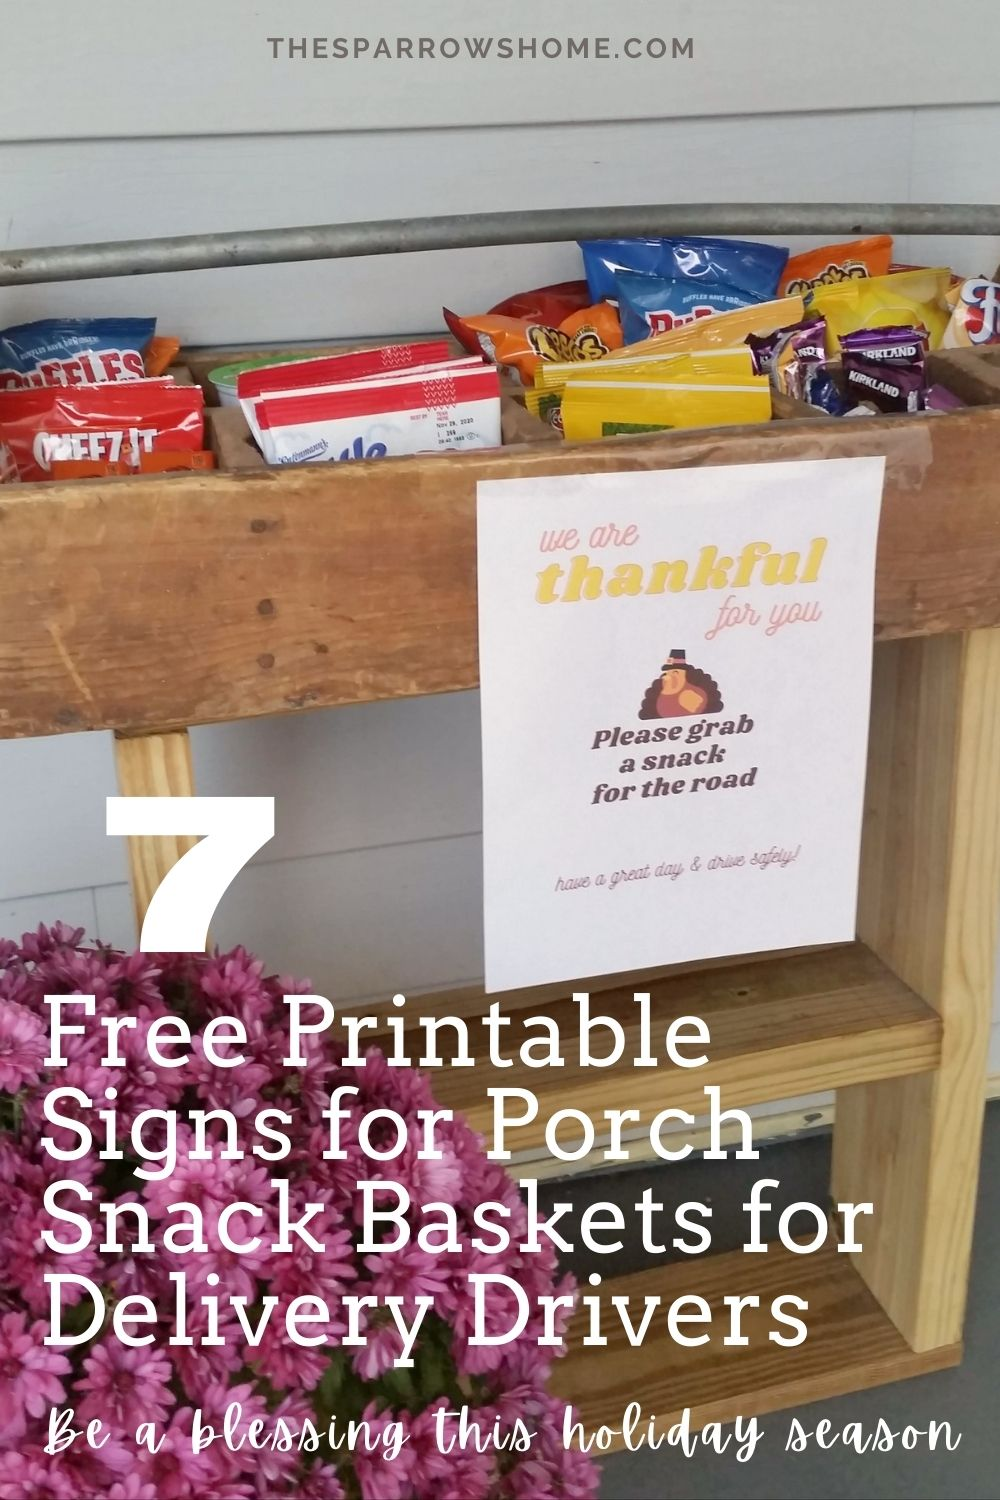 Make a porch basket to brighten the day of your delivery drivers this holiday season (7 free printable signs to choose from!)